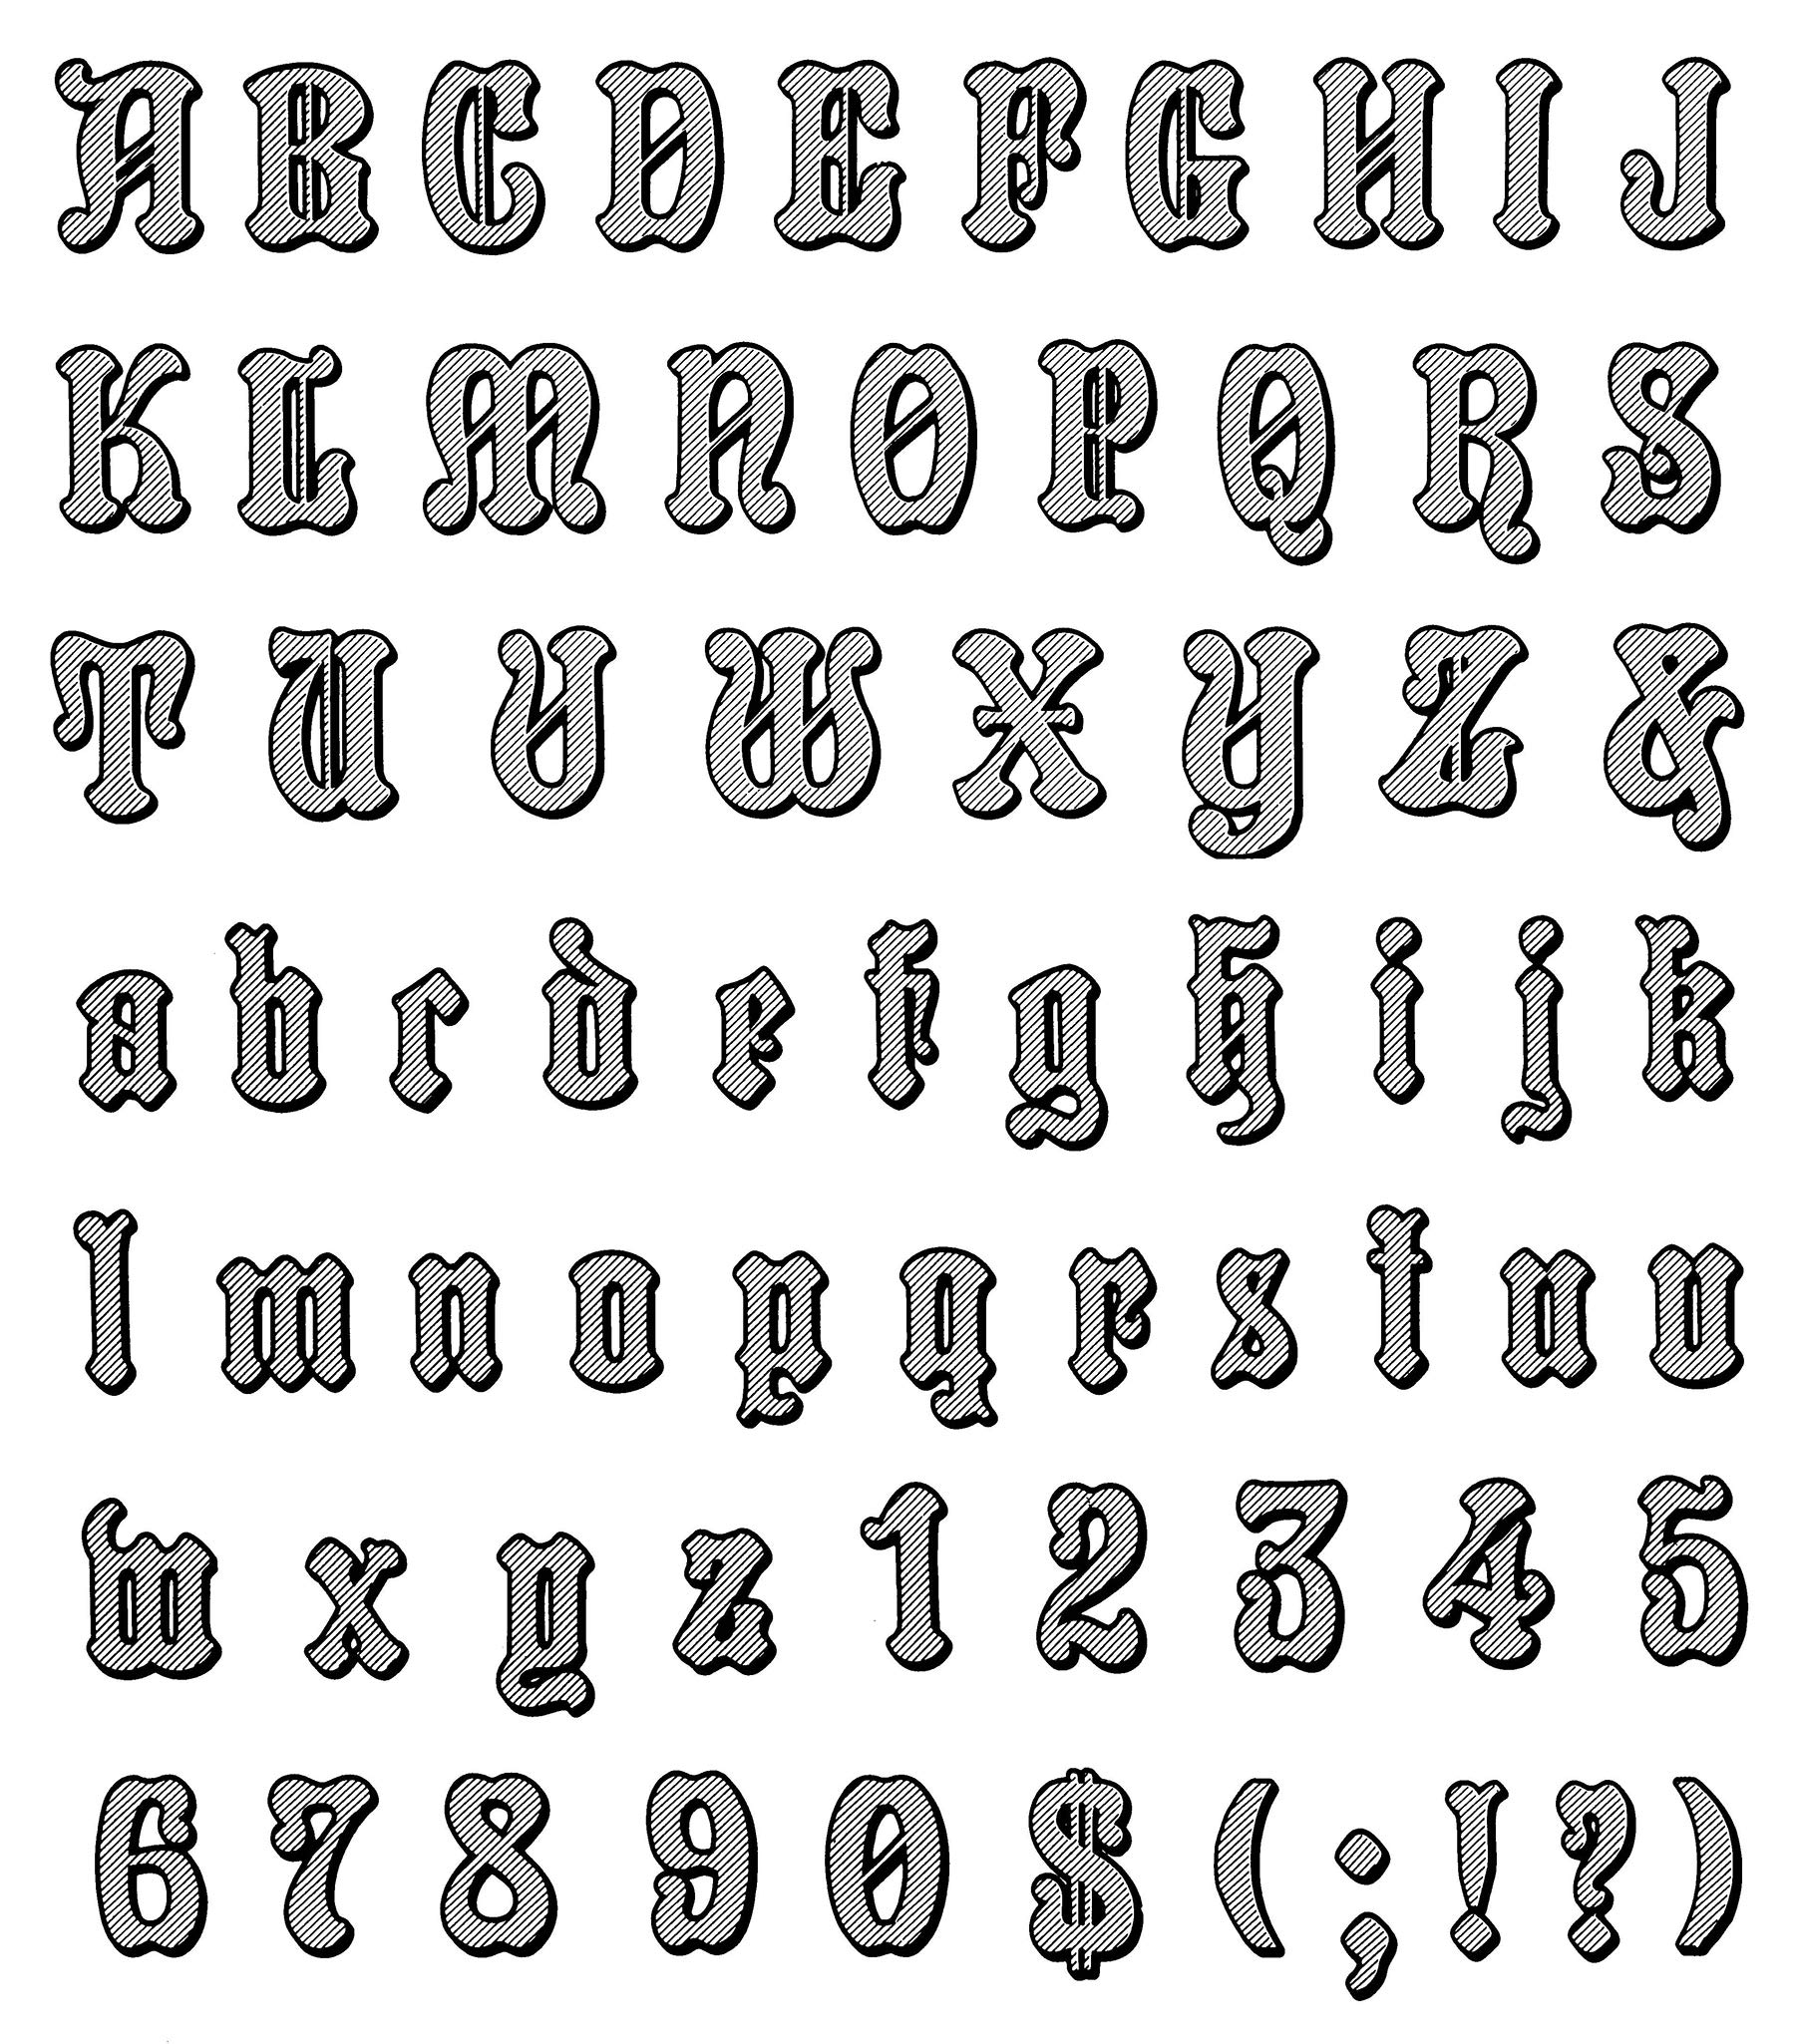 Gothic And Old English Alphabets 100 Complete Fonts Lettering Calligraphy Typography Solo Dan X 9780486246956 Amazon Com Books